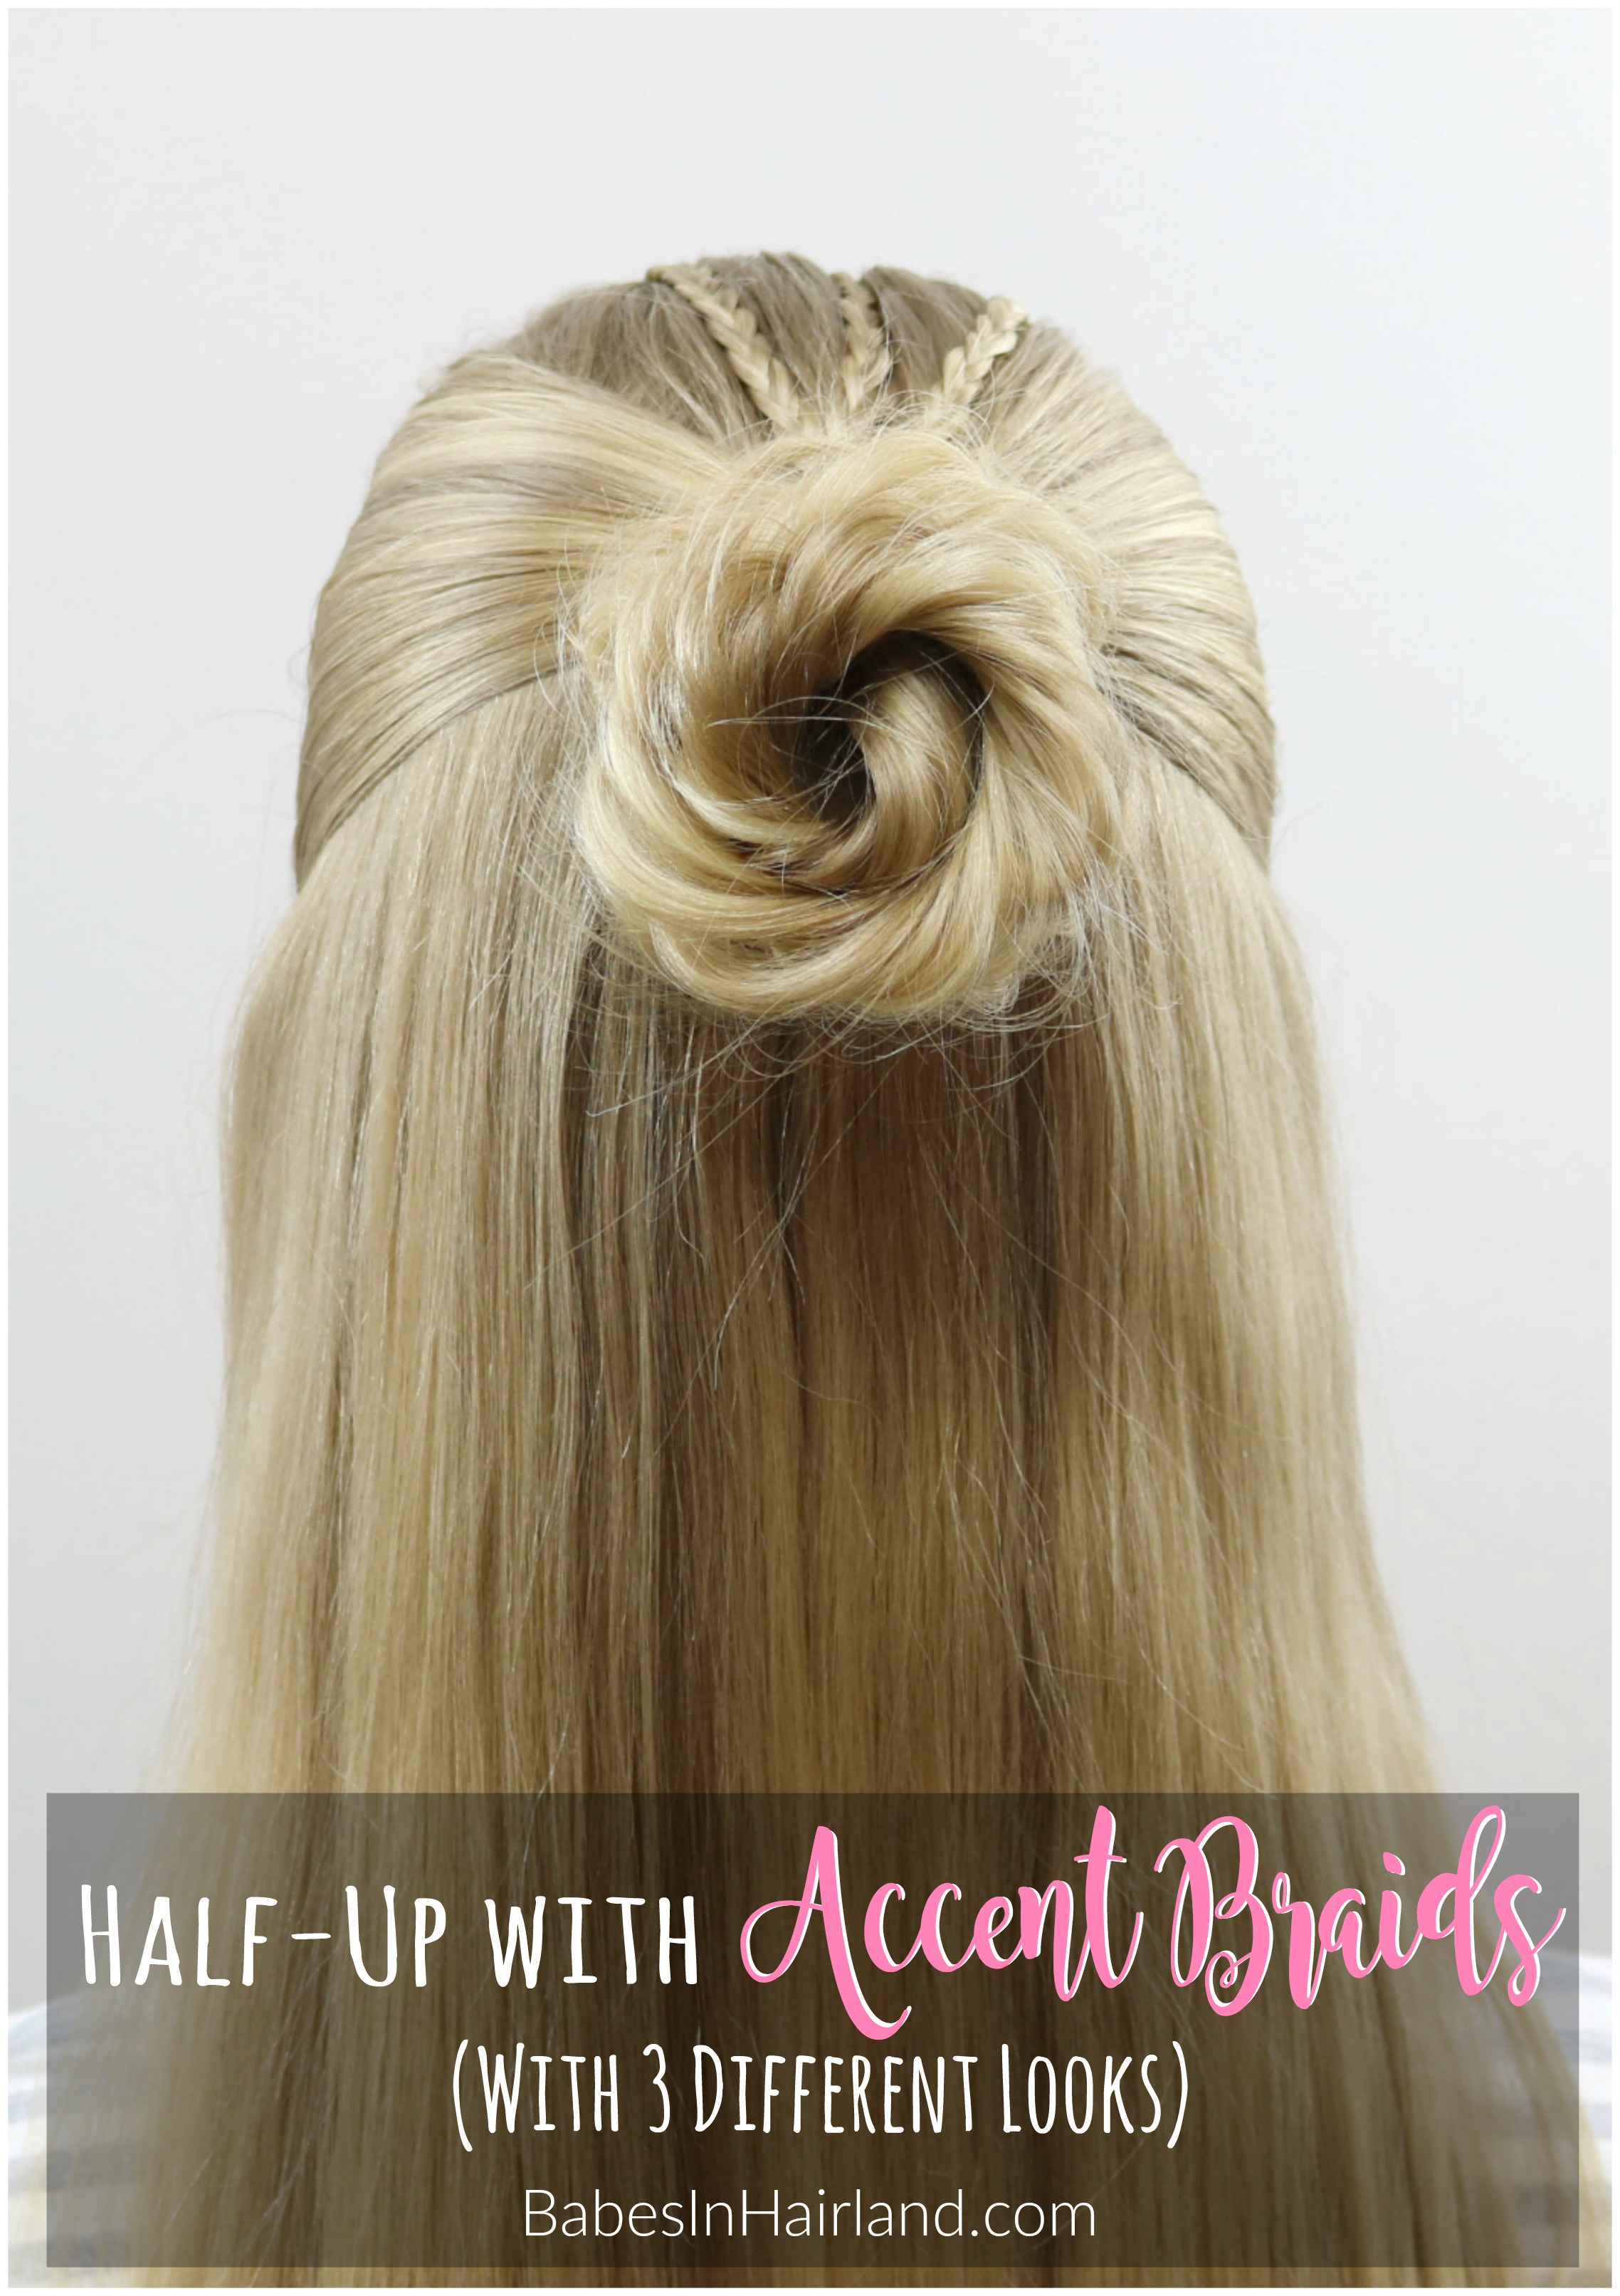 Half-Up Hairstyle with Accent Braids (3 different looks)